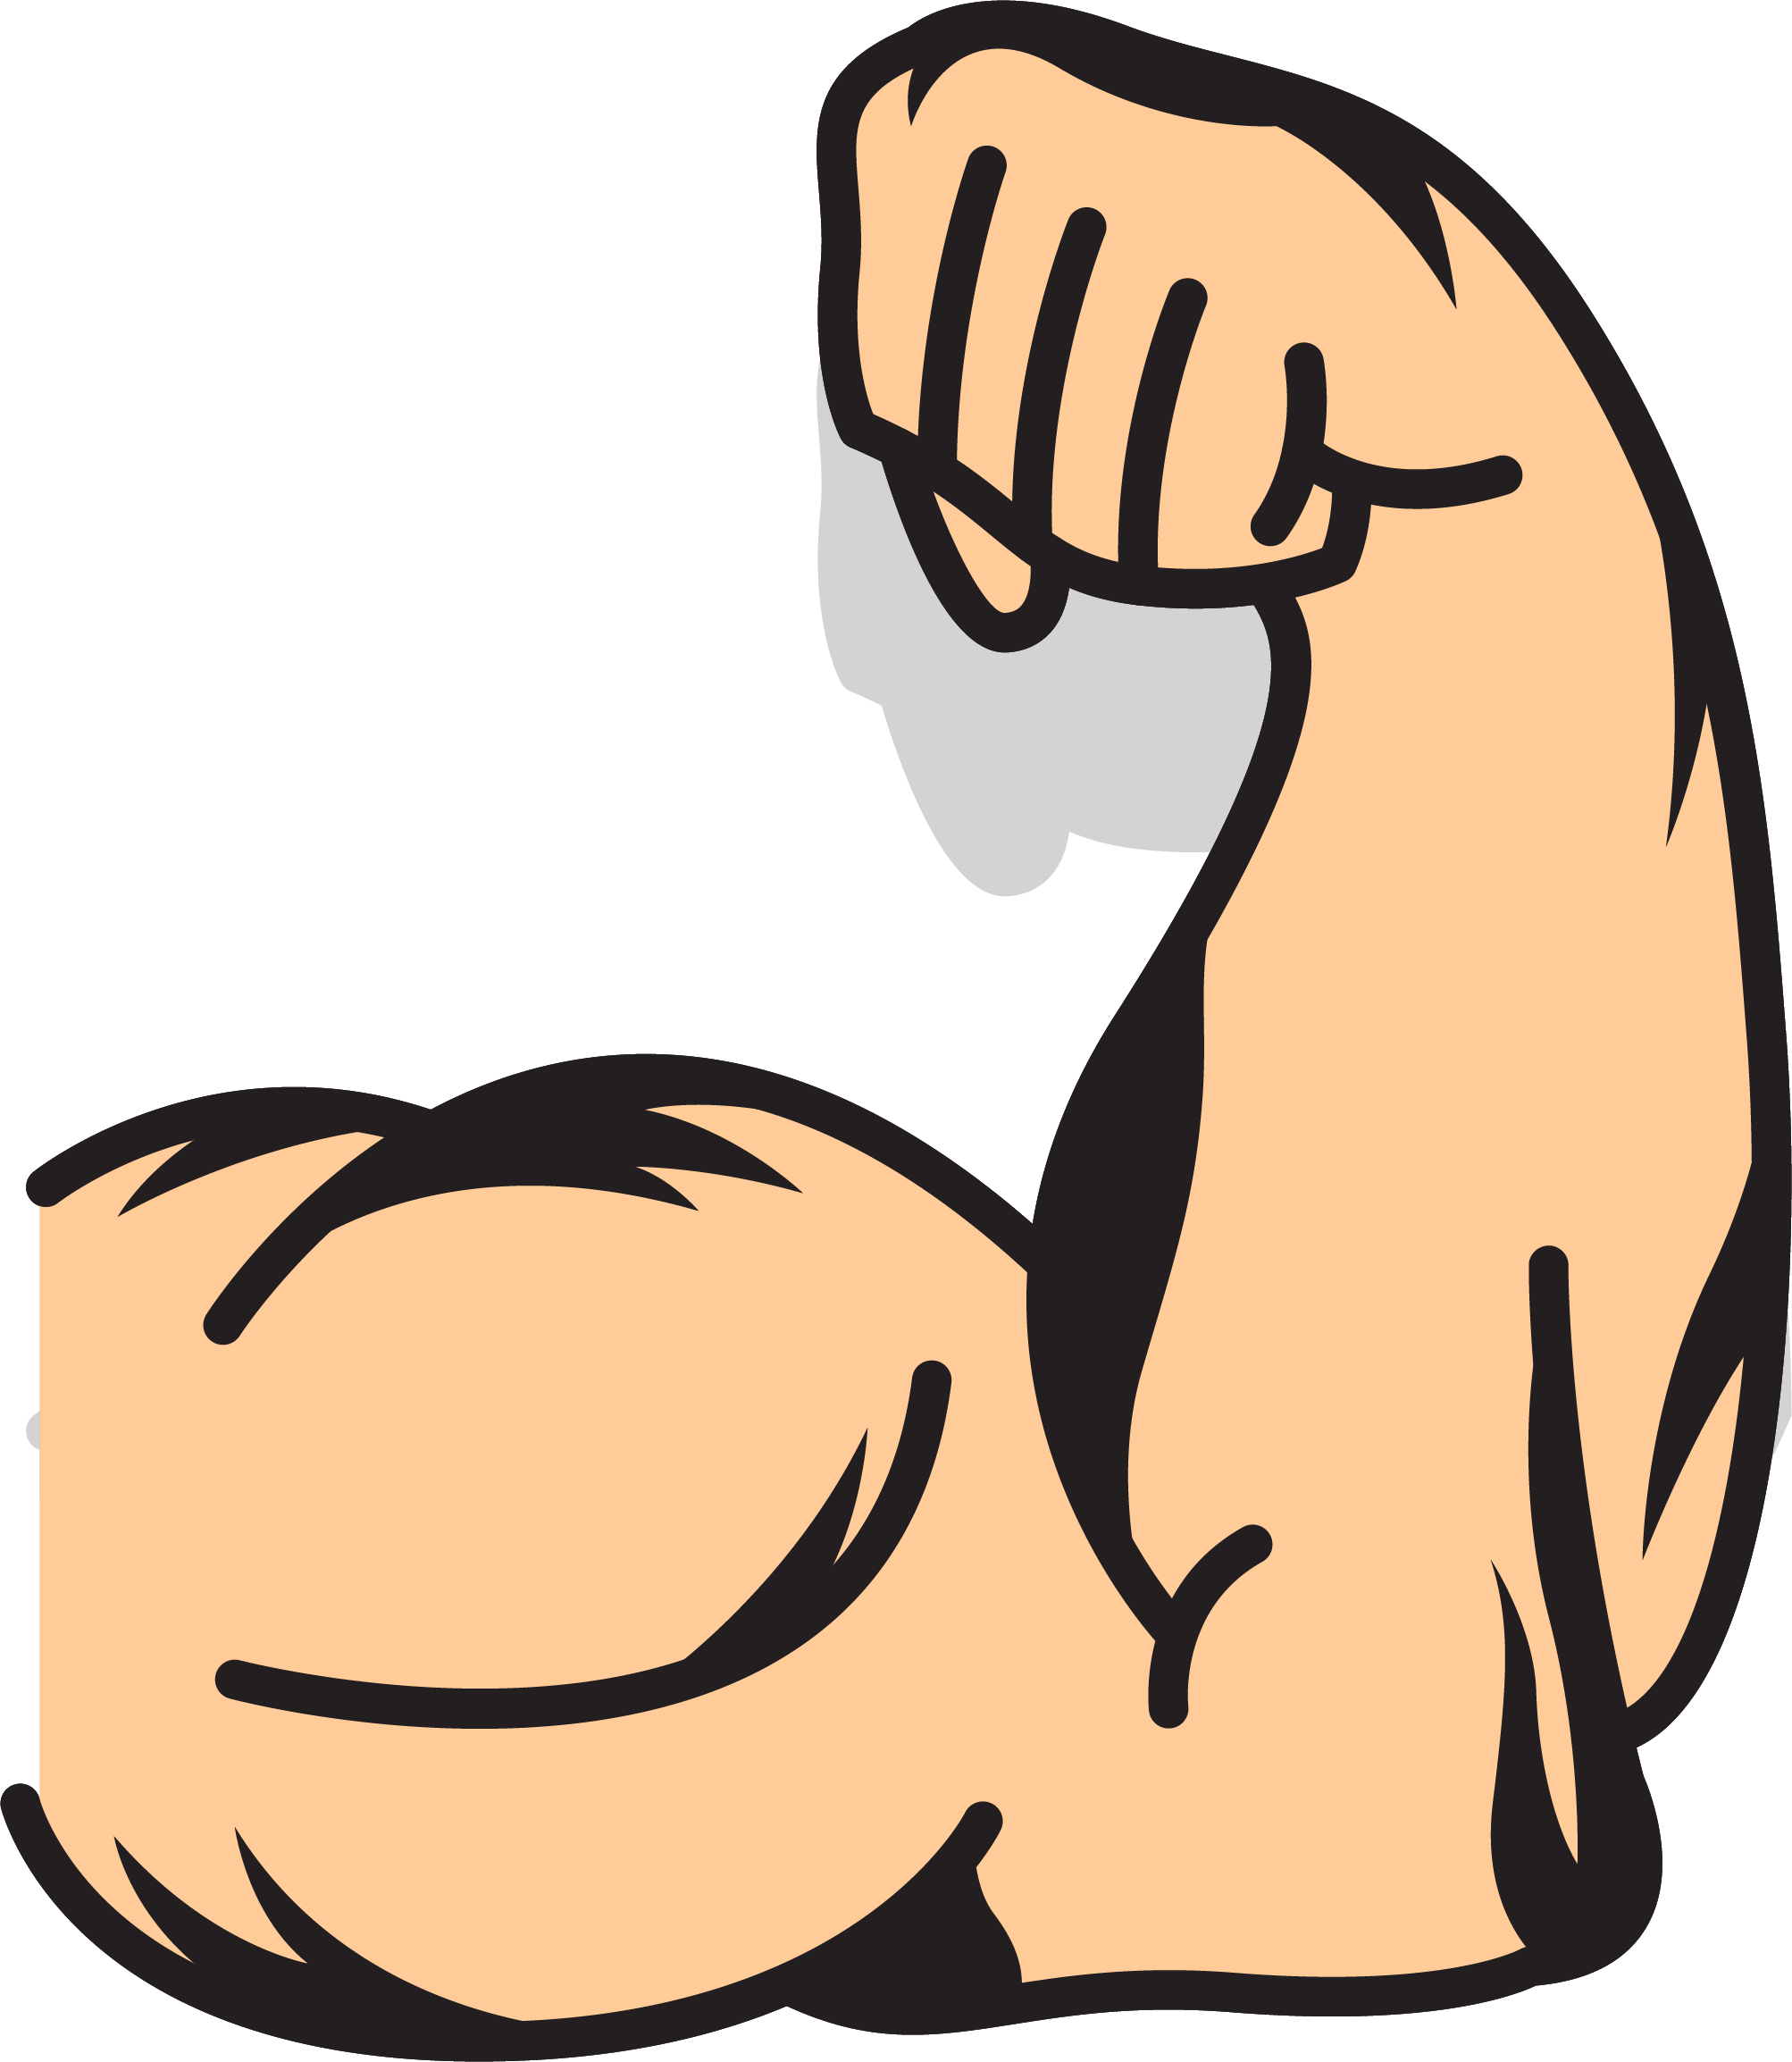 Download Muscles Clipart Muscled Arm And Use For You.